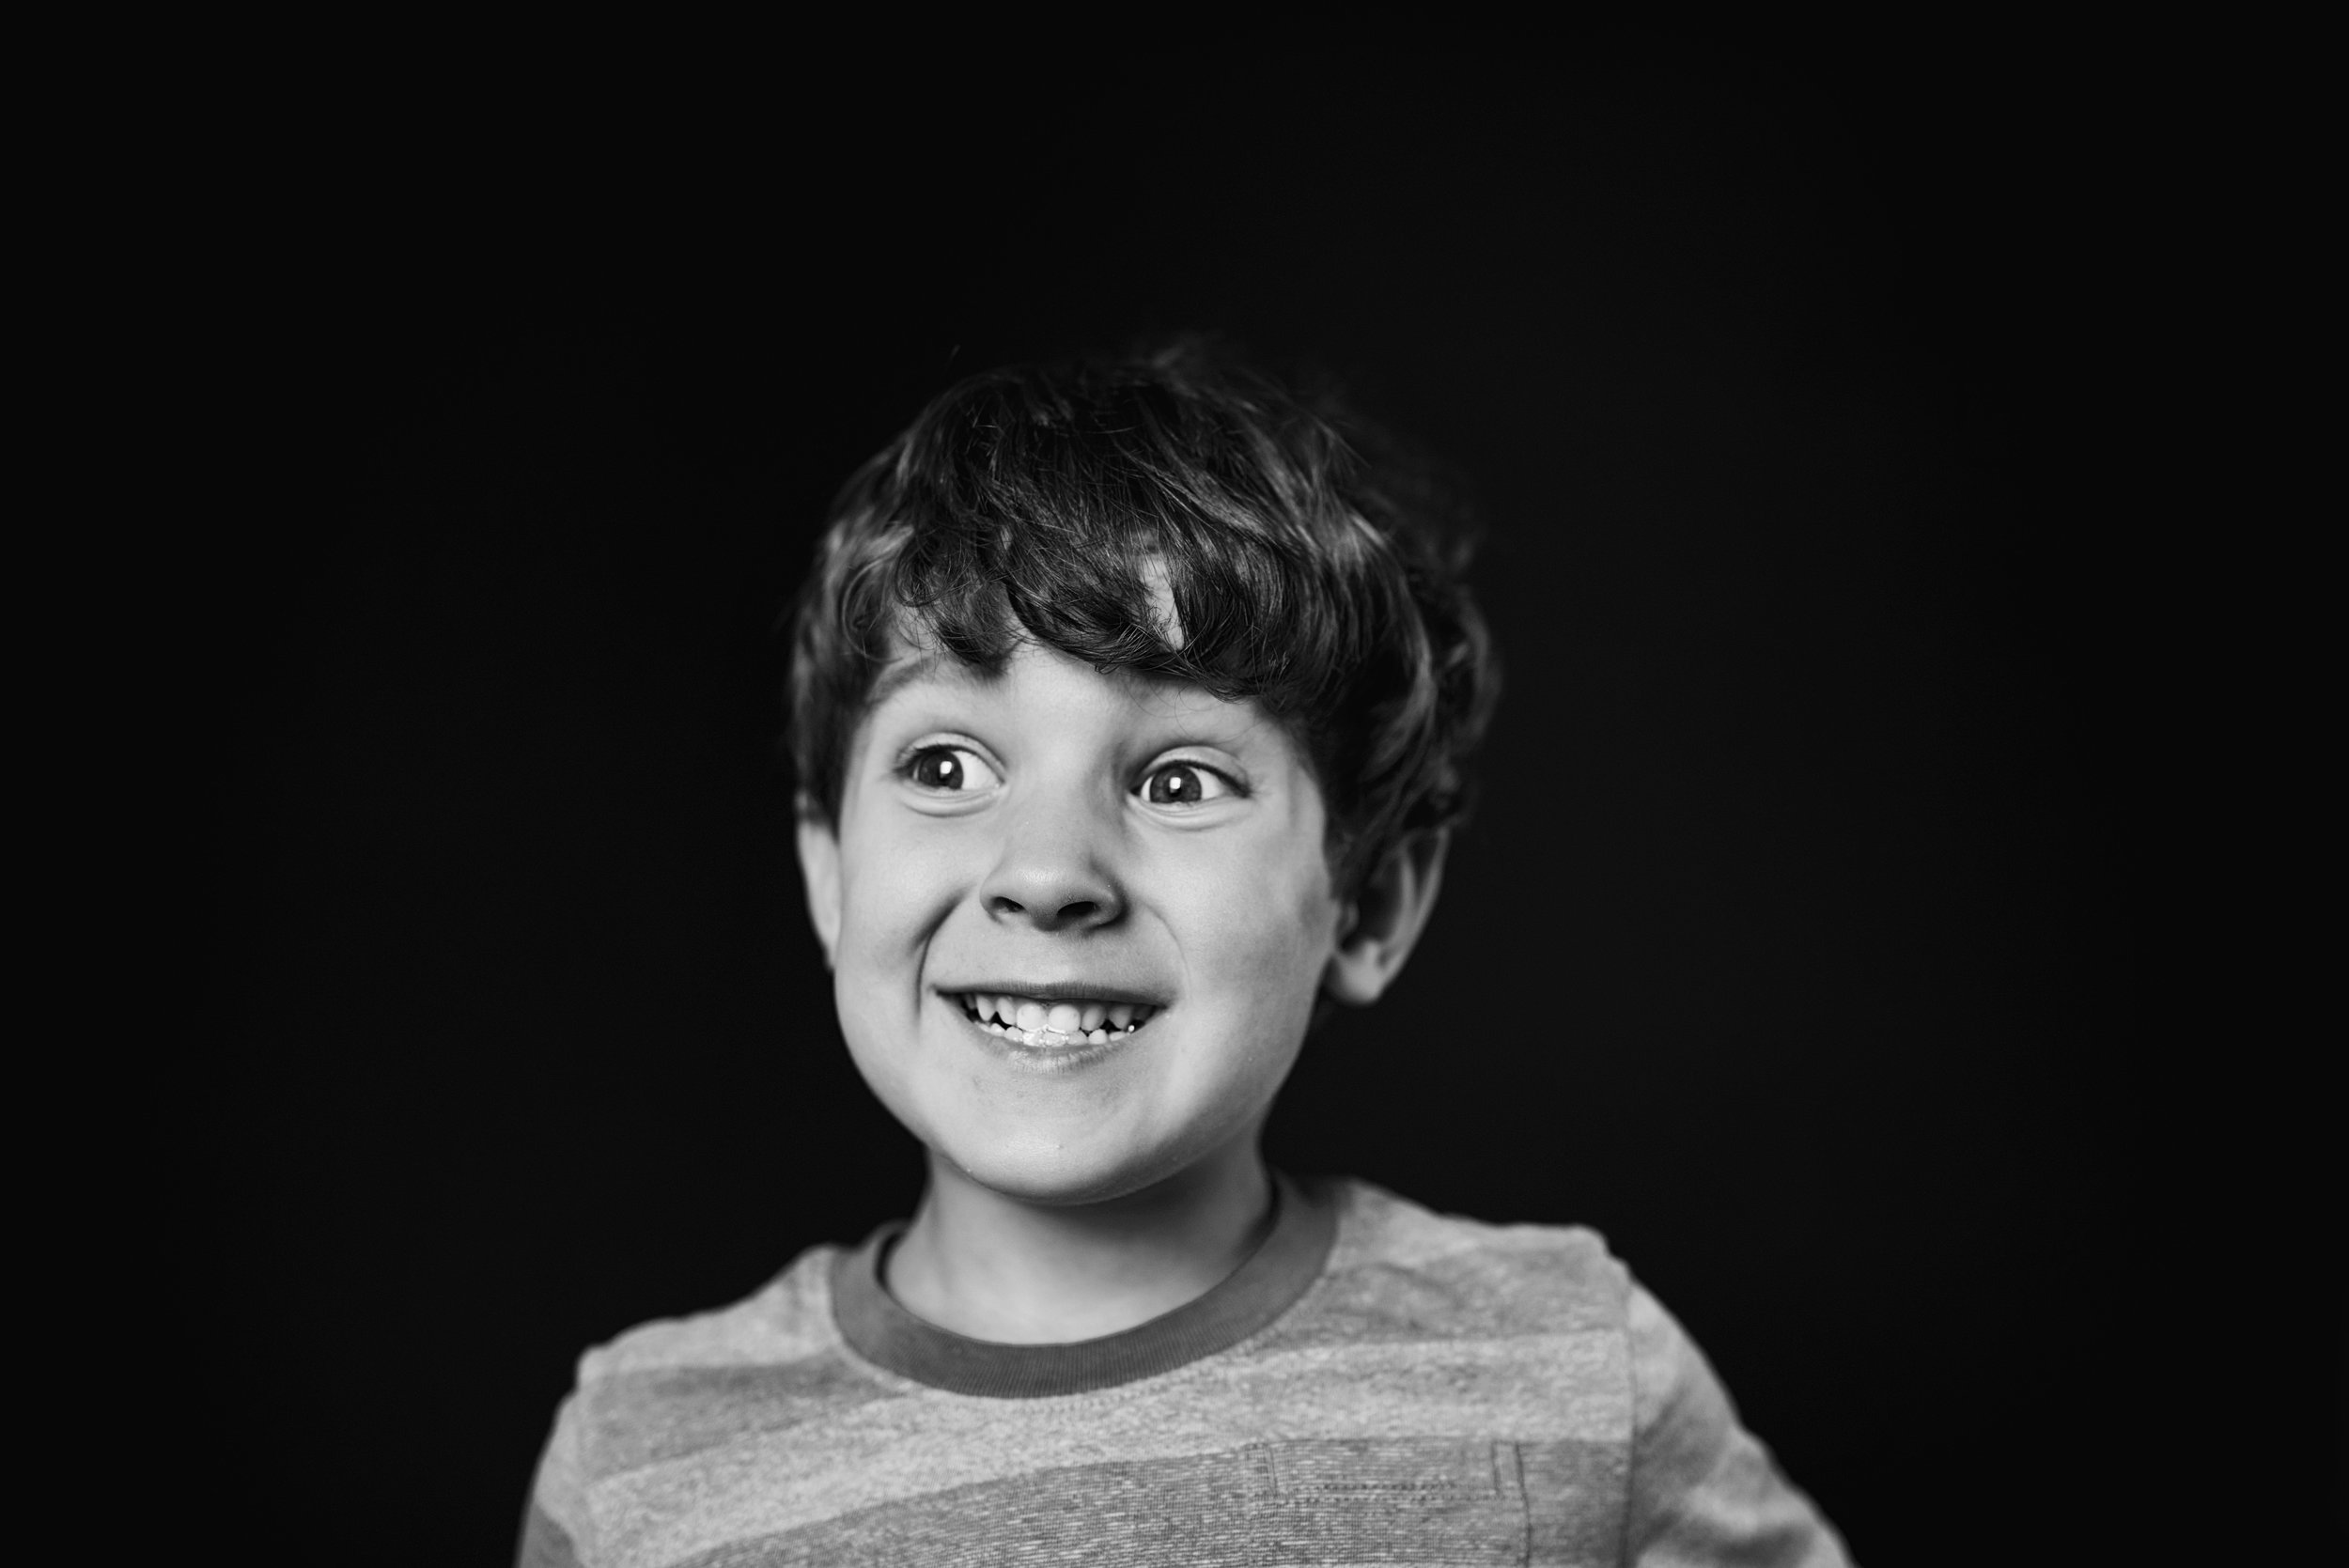 Richmond area boutique school photography for parents and principles who want to showcase their children's unique personalities.